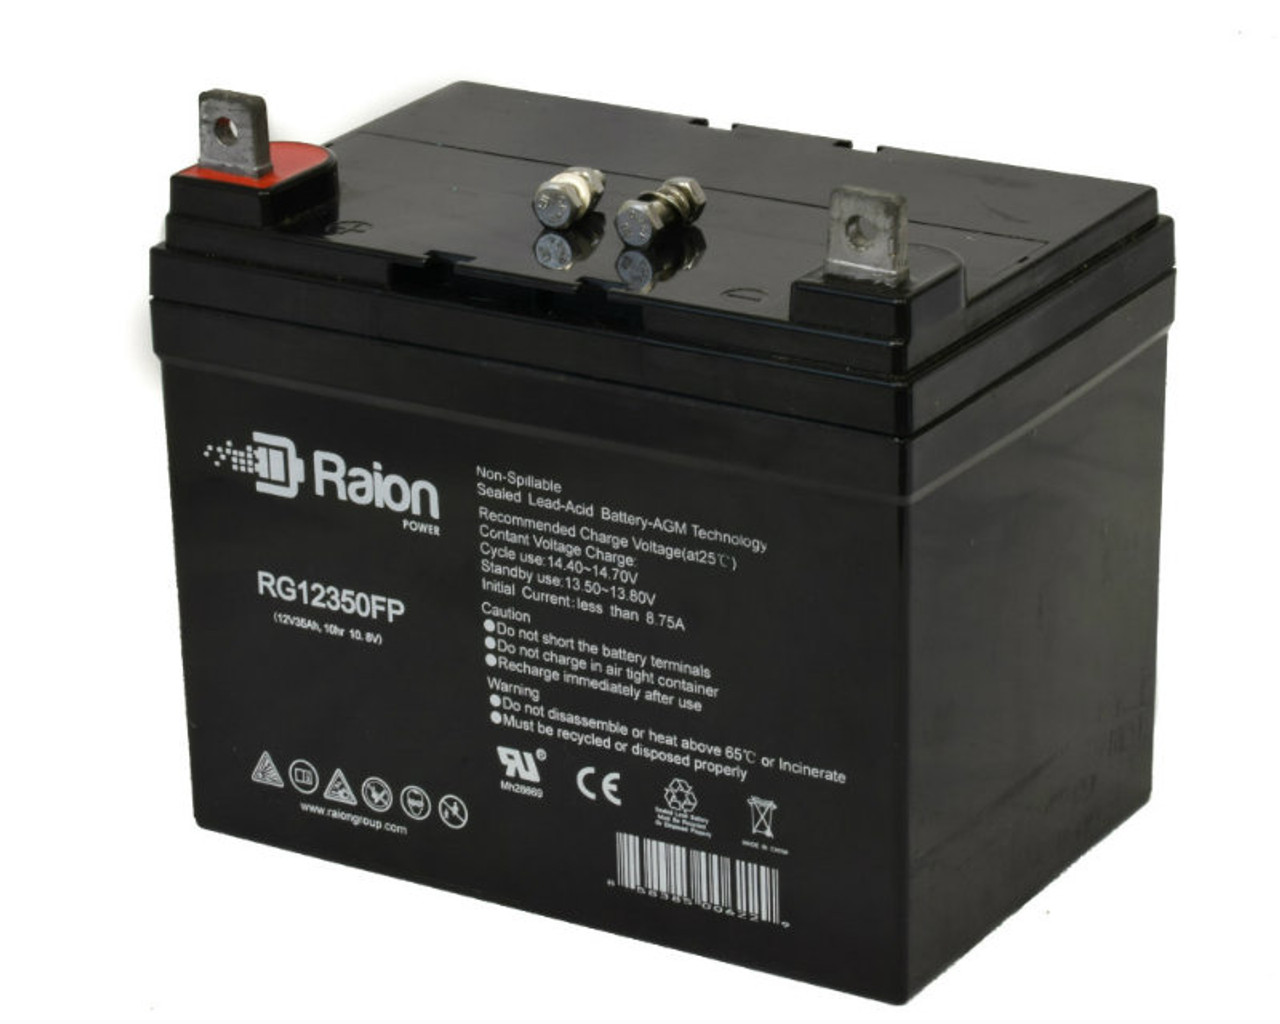 Raion Power RG12350FP Replacement Wheelchair Battery For Shoprider TE-889DX (1 Pack)